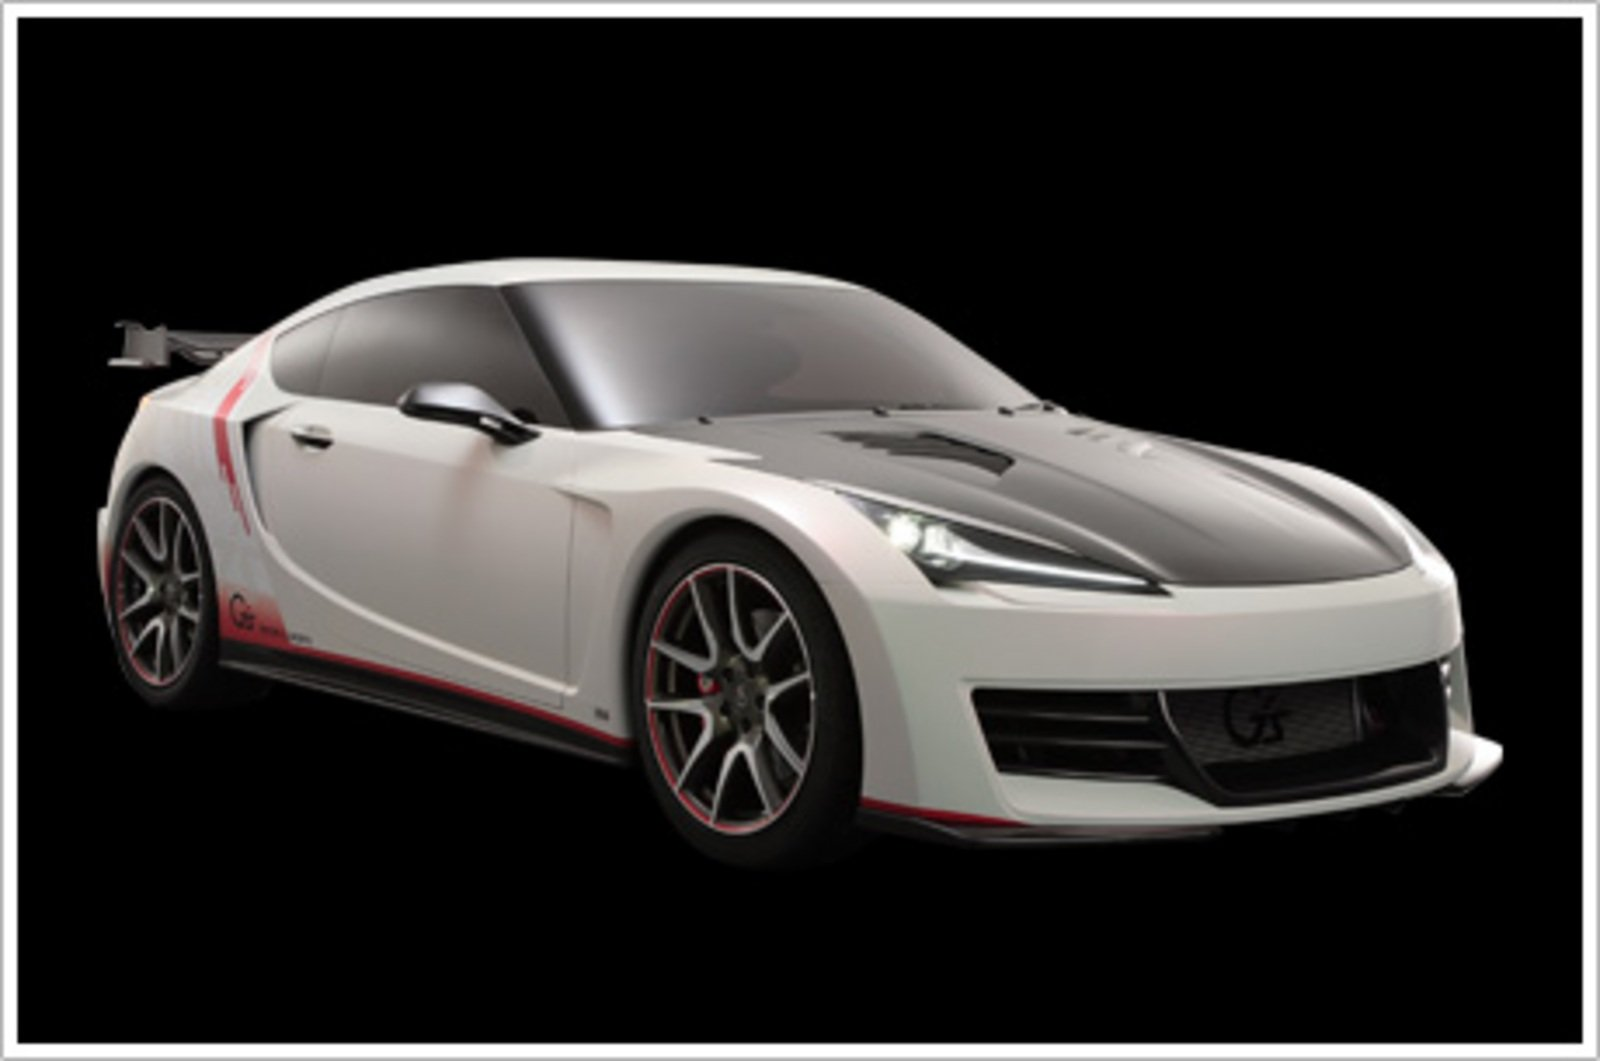 Toyota Ft 86 >> 2010 Toyota FT-86 G Sports Concept Review - Top Speed